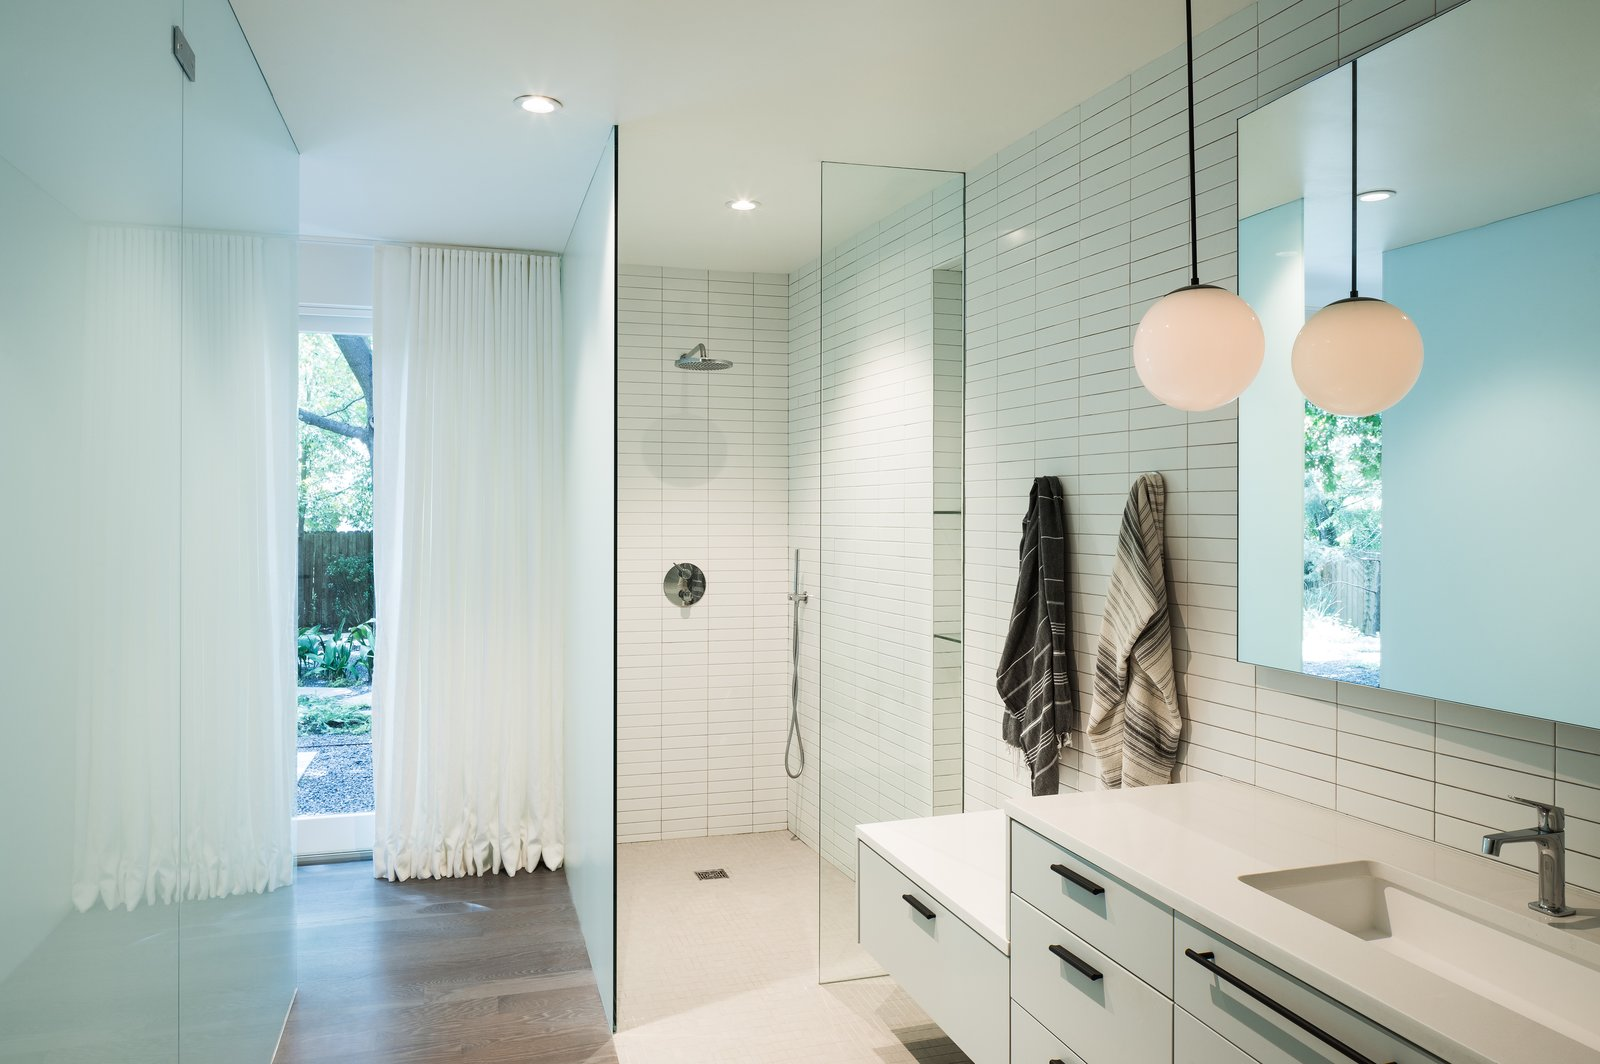 Toyath Residence by Webber + Studio all-white bathroom with glass-enclosed, walk-in shower